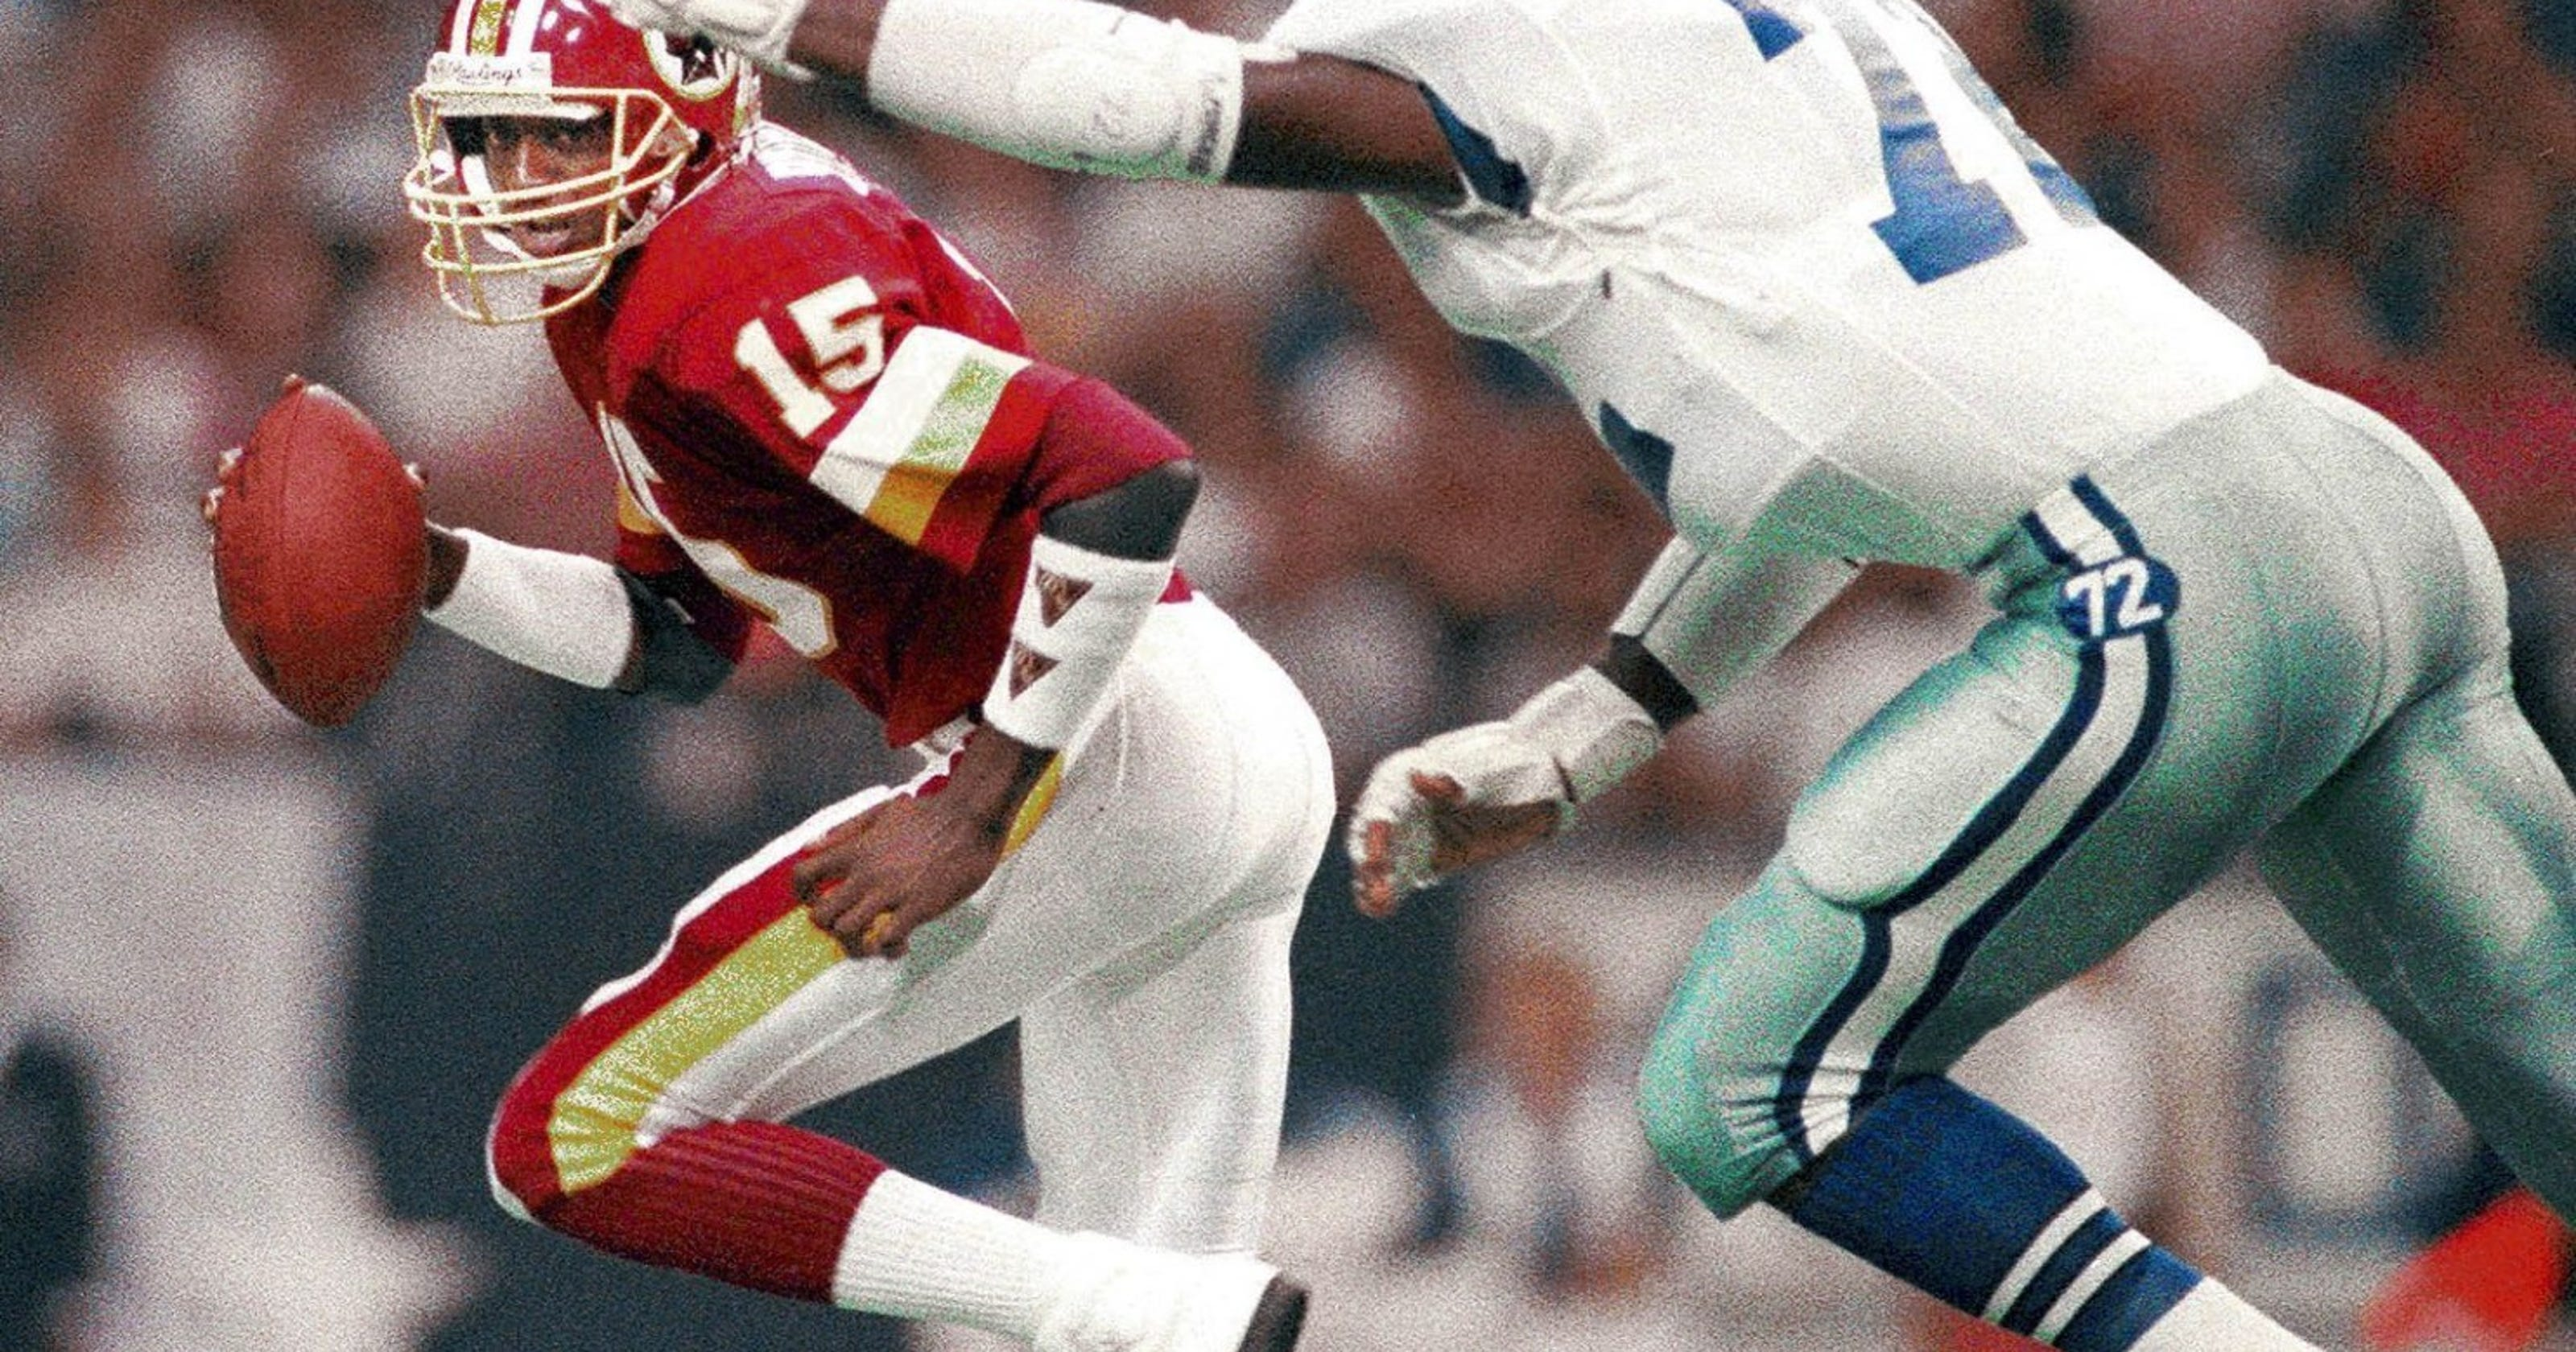 promo code d4026 40638 Washington Redskins scabs, including Tony Robinson, to ...